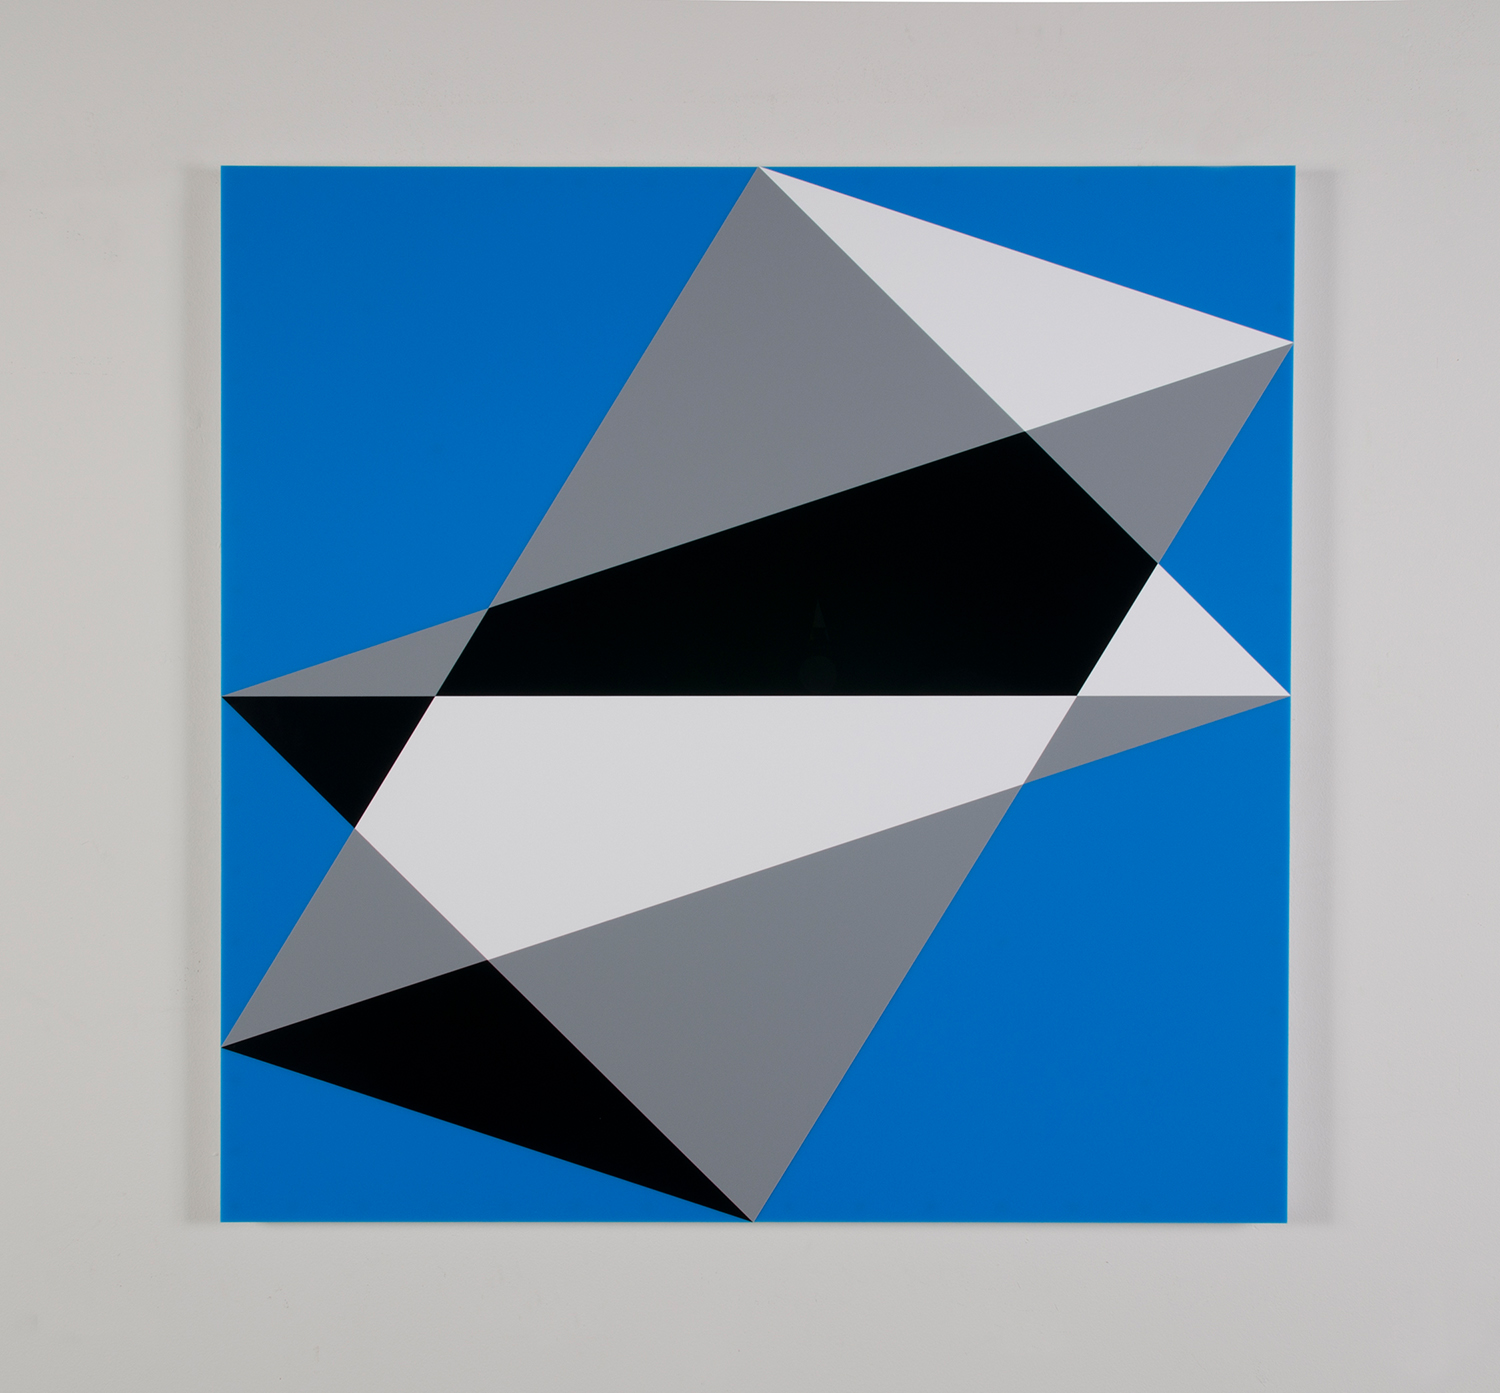 "Composition in 3015 White, 3001 Gray, 2025 Black and 2648 Blue Colored Plexiglas mounted on panel 37.5"" x 37.5"" 2015"